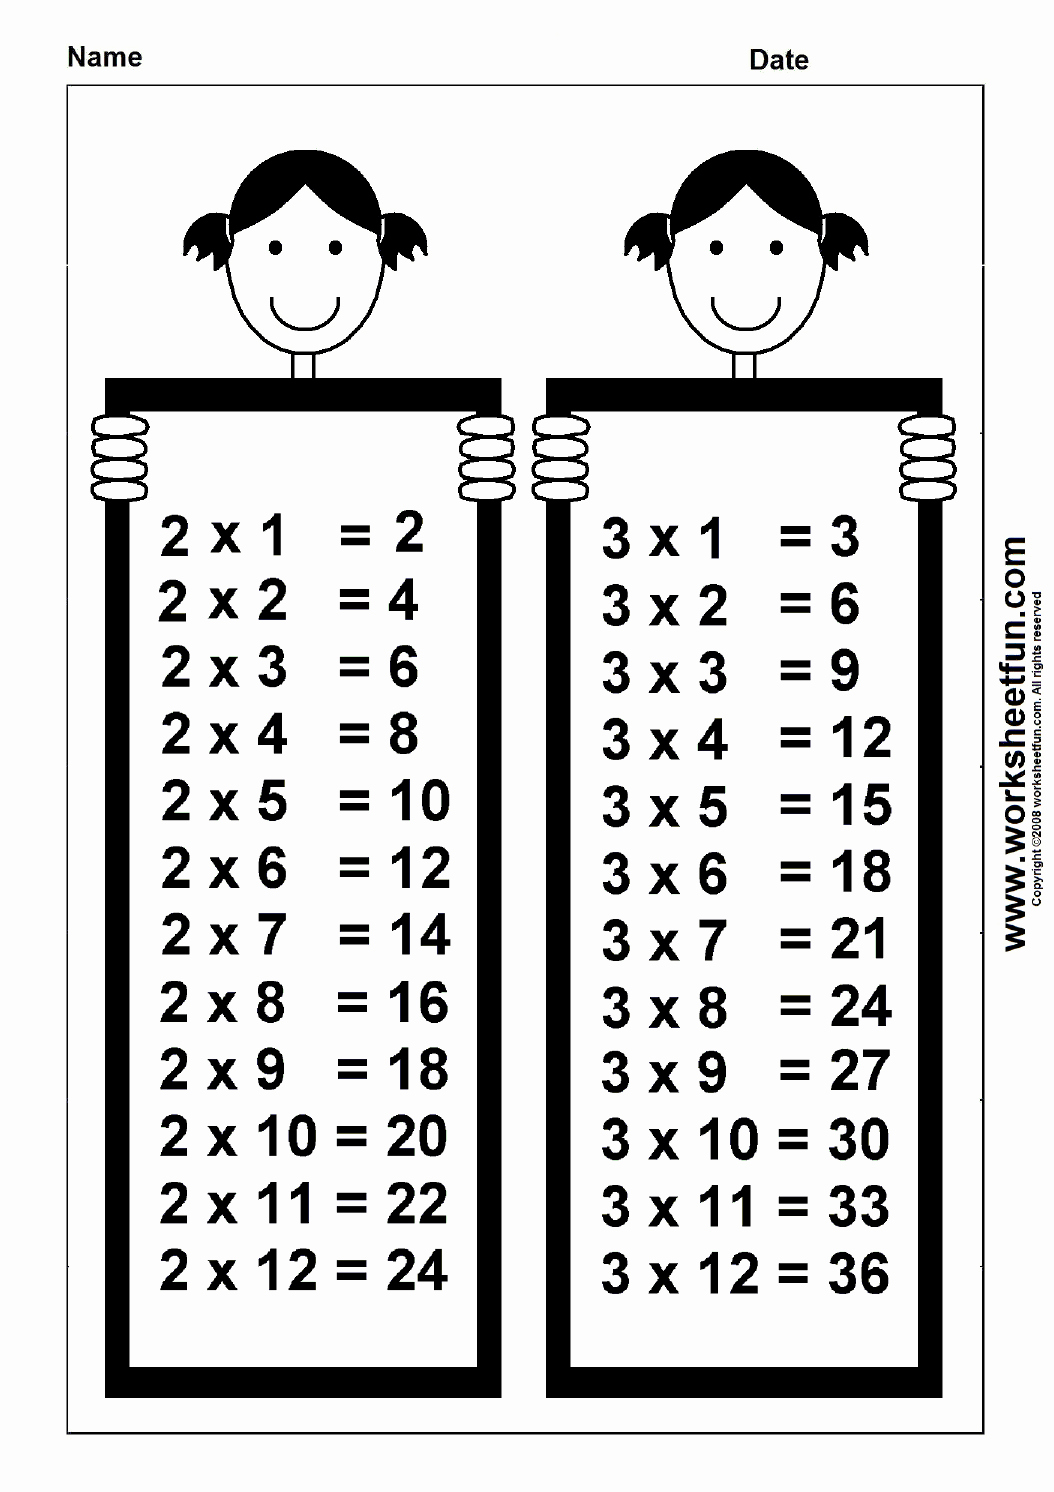 3 Times Table Worksheet Inspirational Times Table Chart – 2 & 3 Free Printable Worksheets